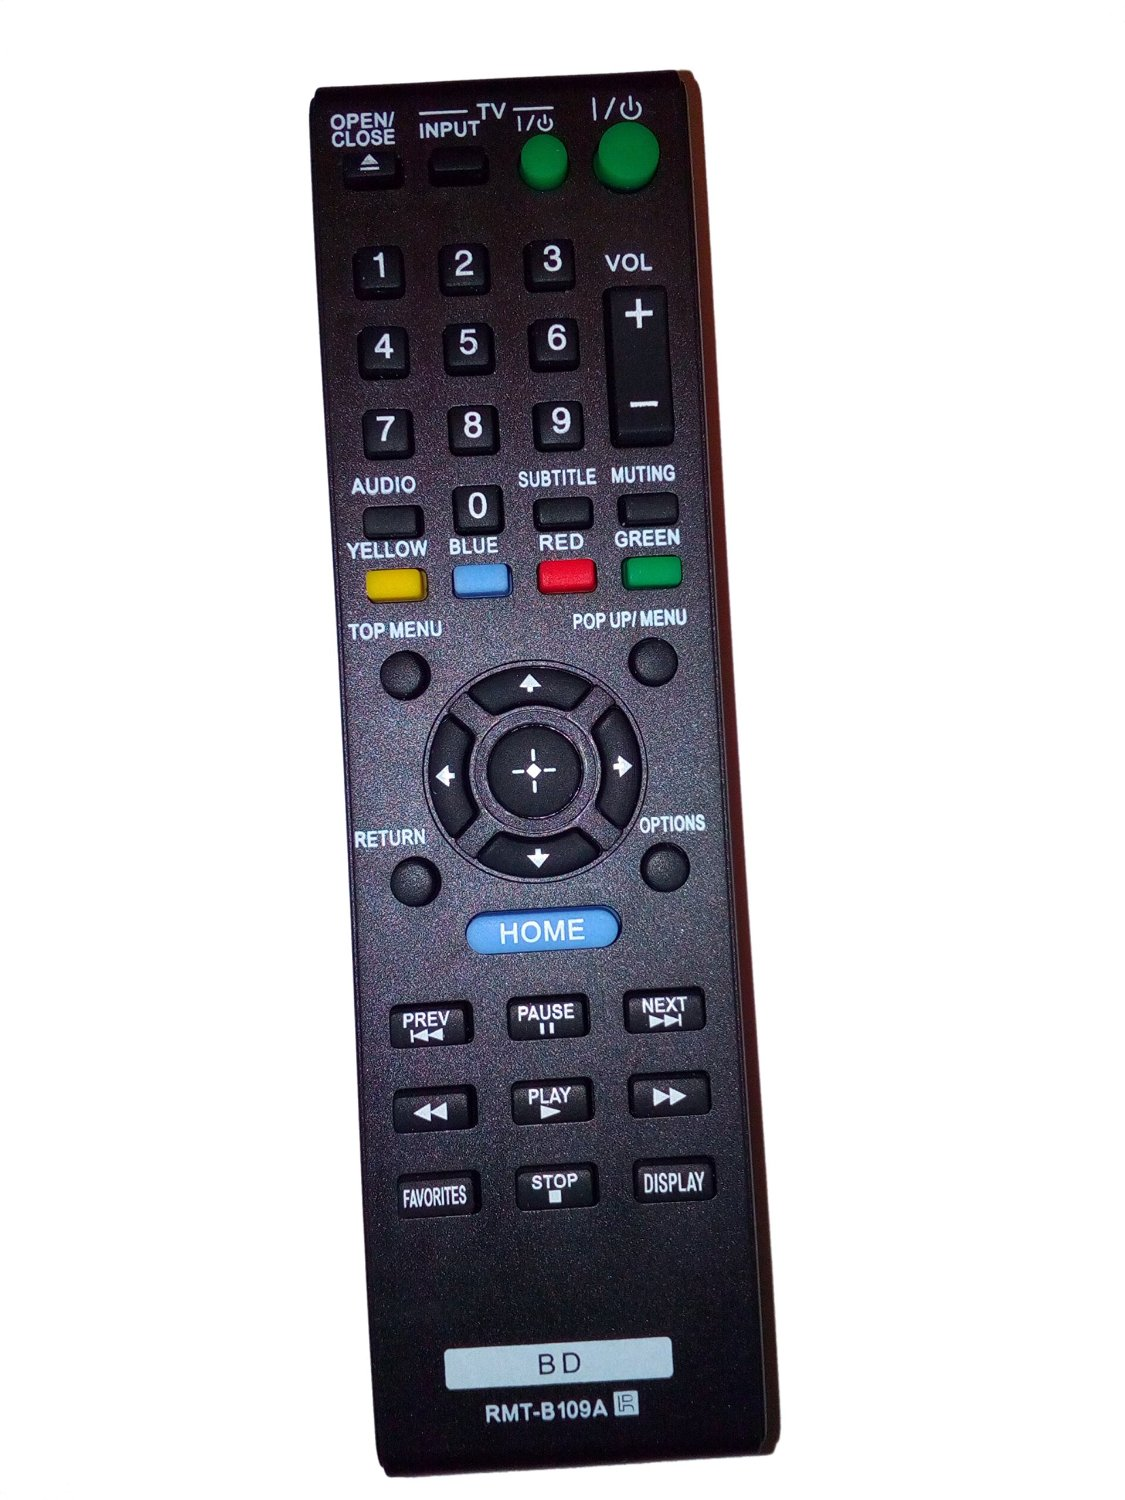 New Replacement Remote Control 148939911 RMT-B109A for Sony BDP-S280 BDP-S380 BDP-S480 BDP-S580 BDP-BX38 BDPS380 BD Blu-ray DVD Disc Players